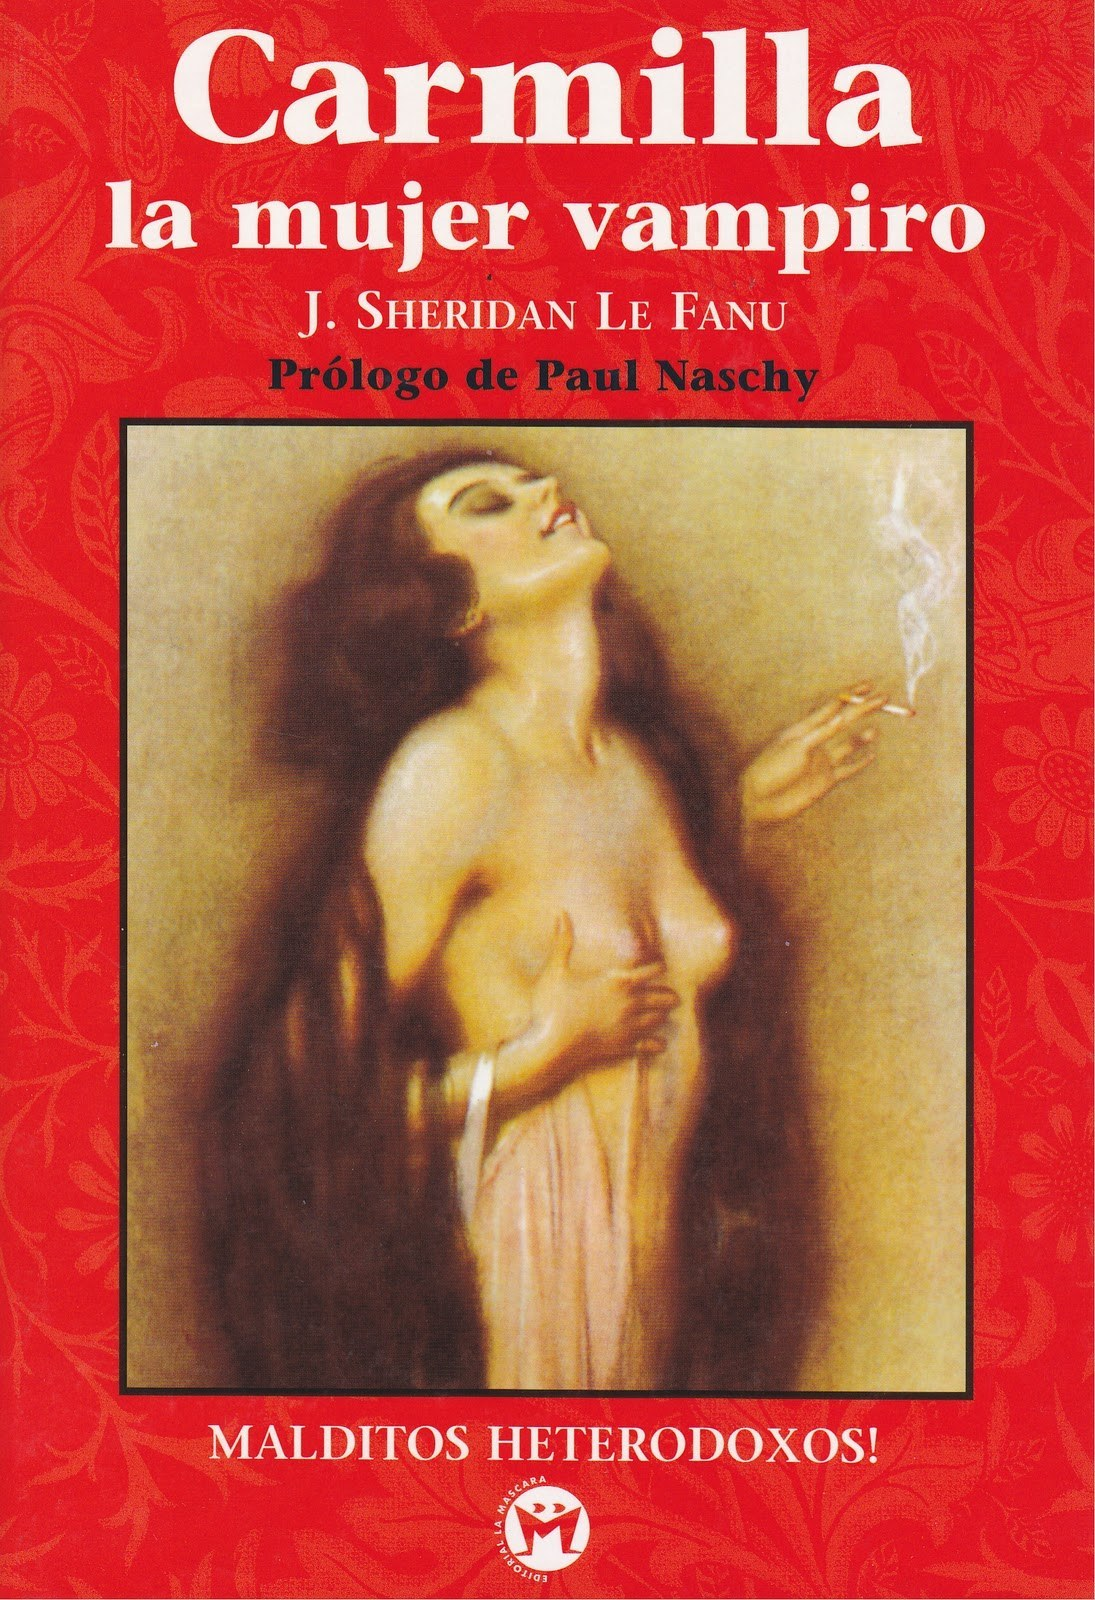 Sheridan Le Fanu's novella was first published in 1871.